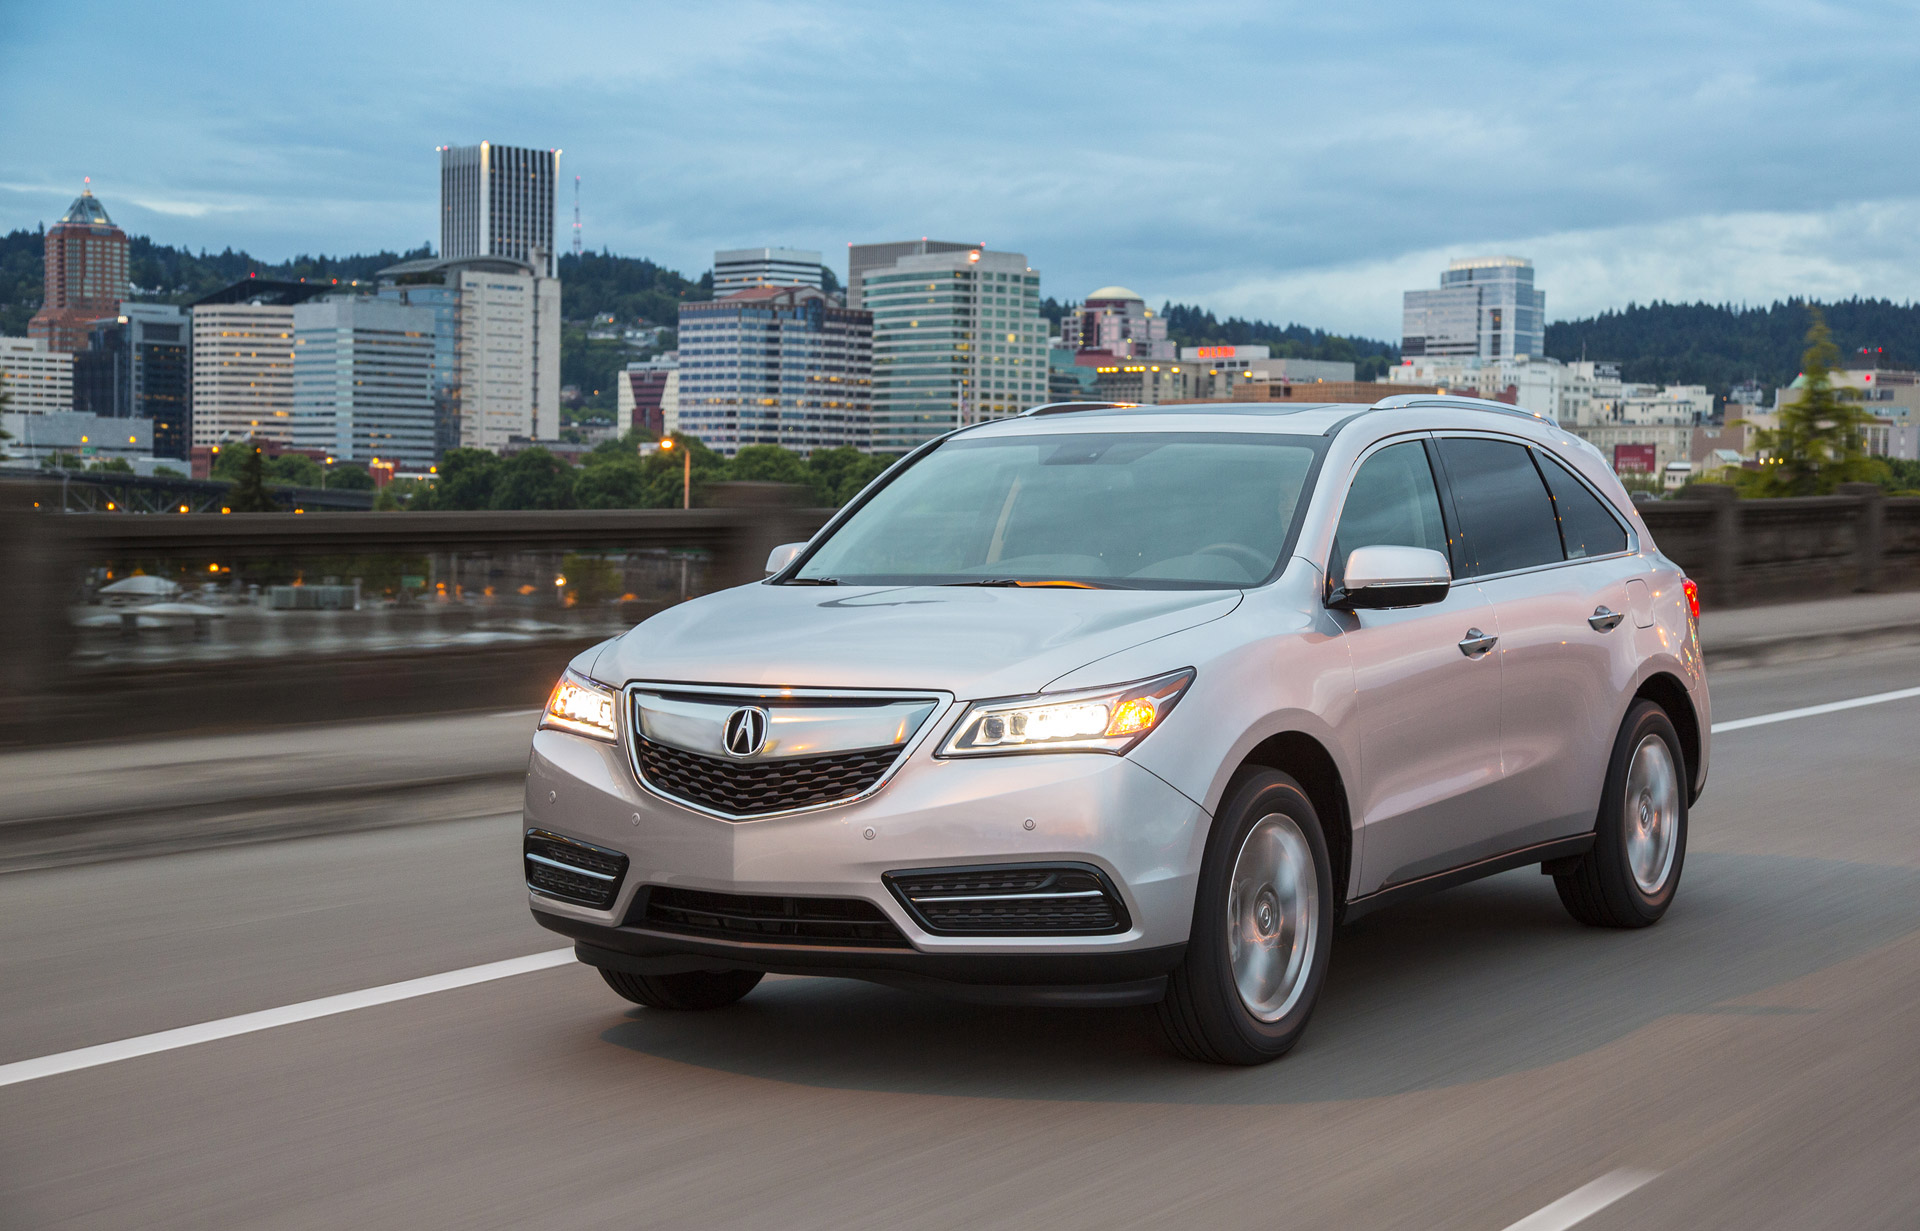 2016 Acura MDX Review, Ratings, Specs, Prices, And Photos